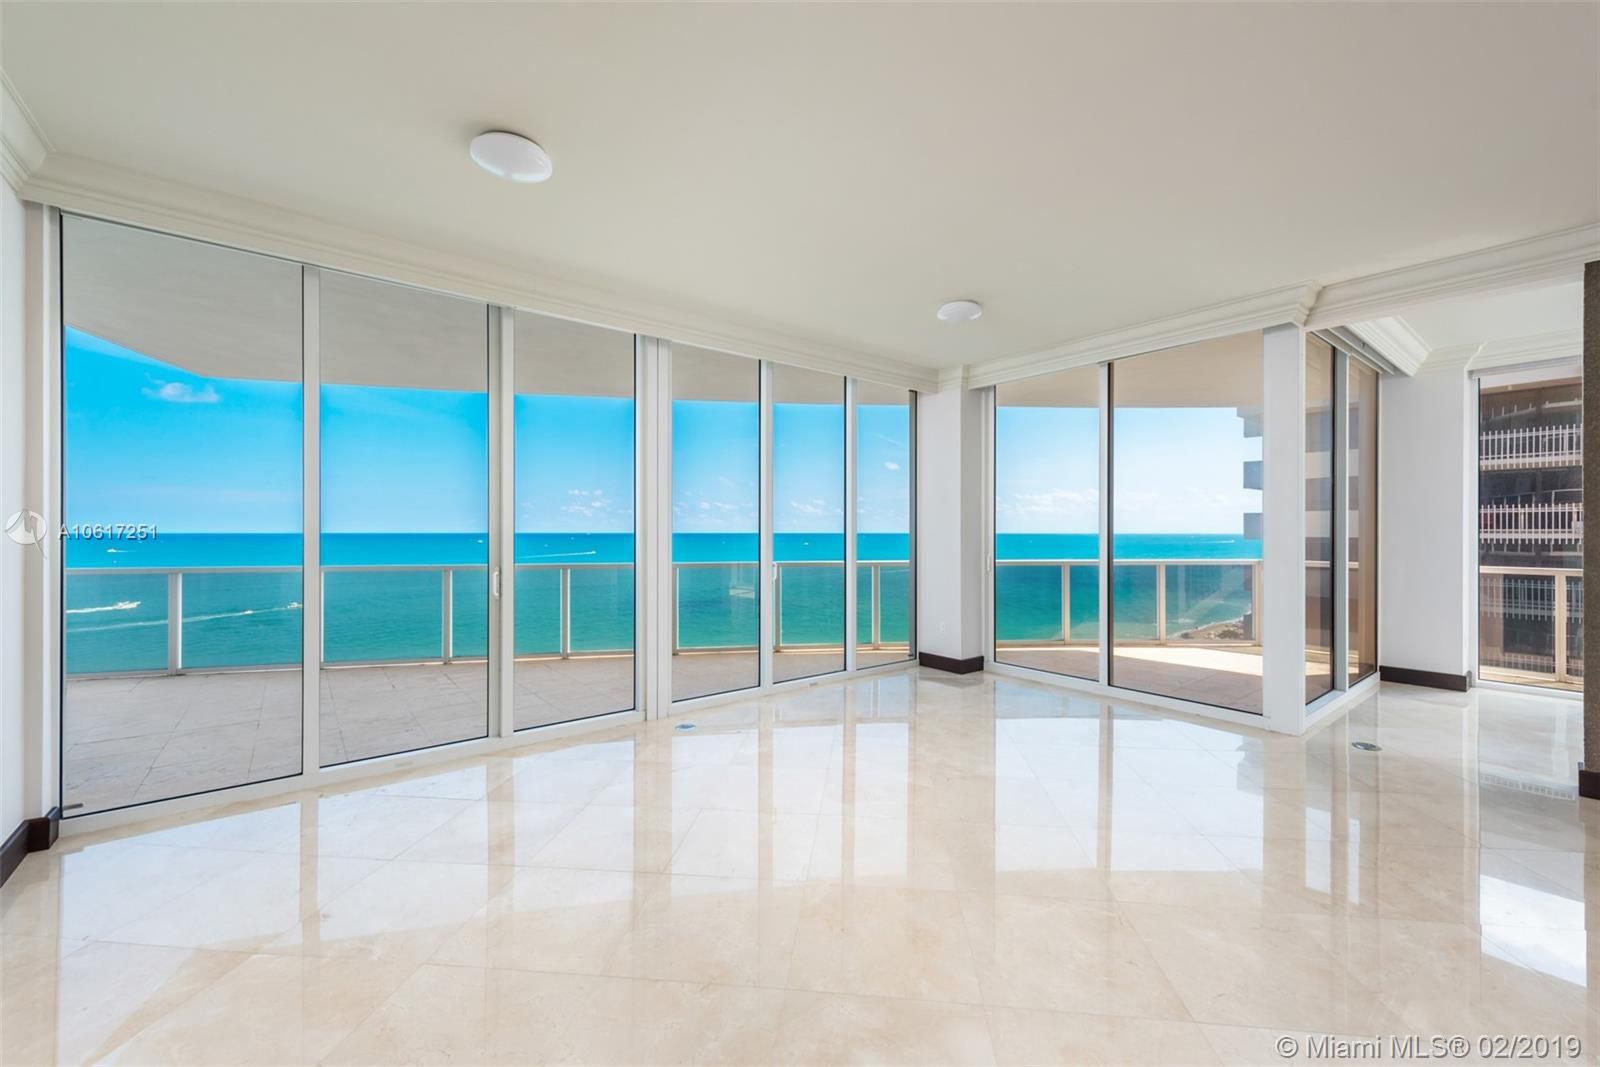 10225 Collins Ave 1202, Bal Harbour, FL 33154